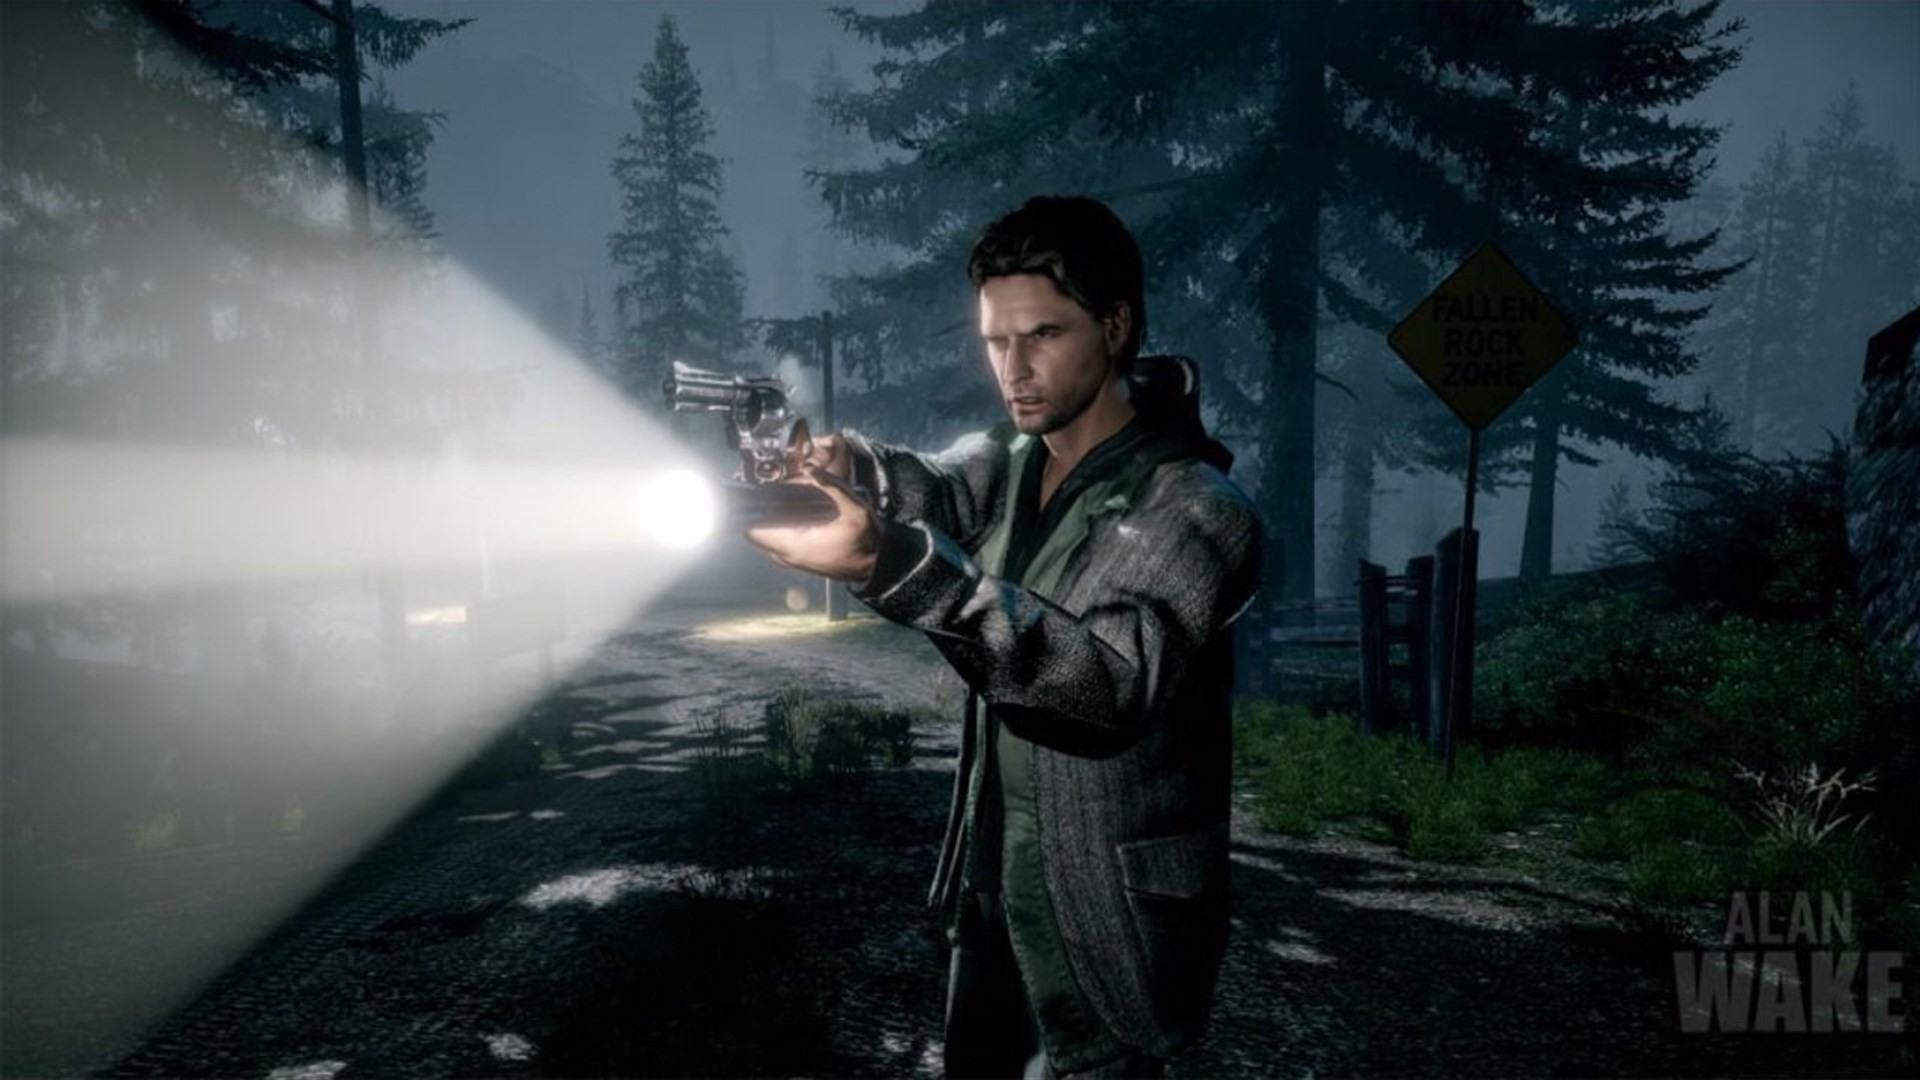 1920x1080 free high resolution wallpaper alan wake